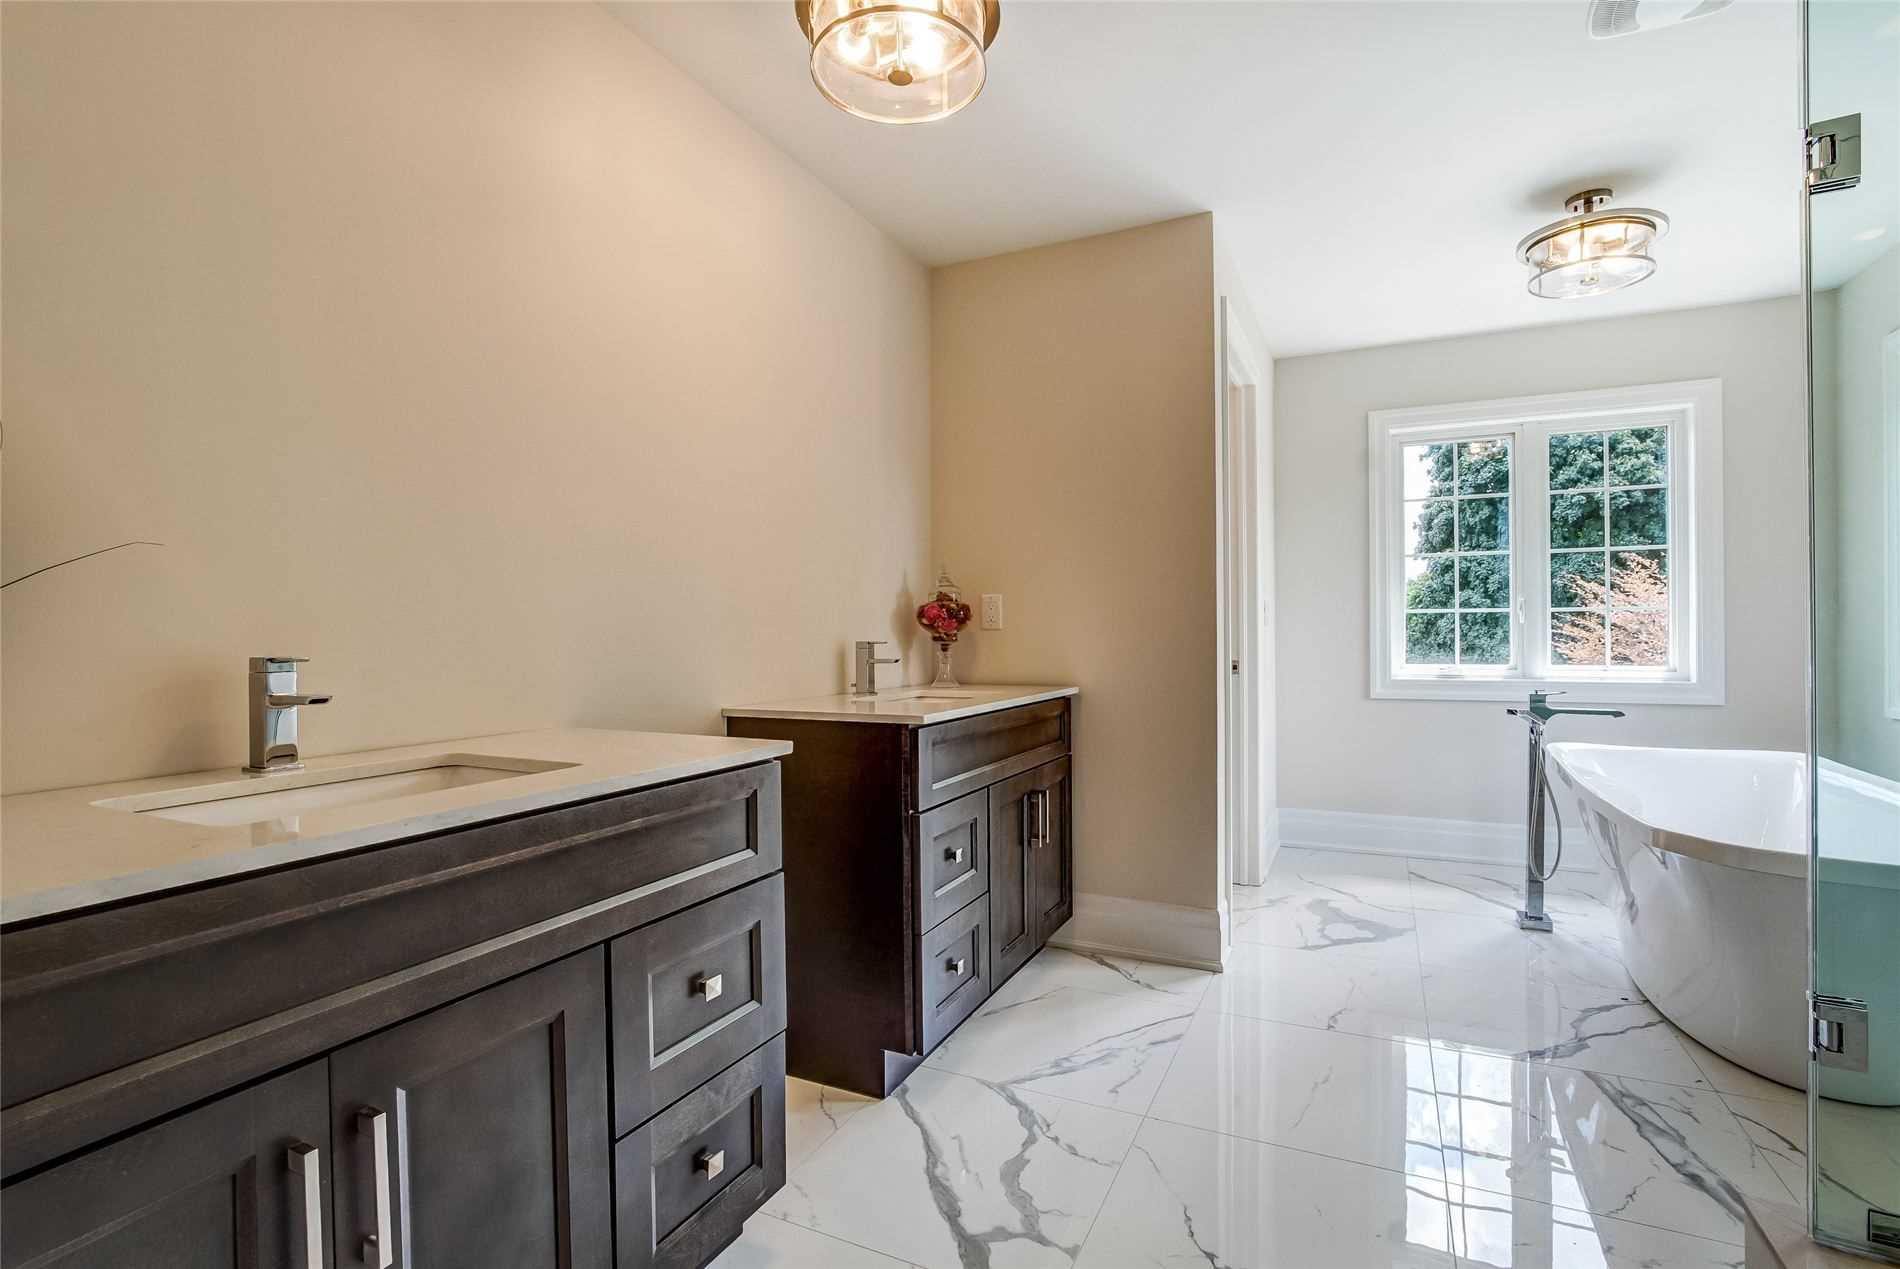 1480 Applewood Rd, Mississauga, Ontario L5E2M3, 4 Bedrooms Bedrooms, 9 Rooms Rooms,5 BathroomsBathrooms,Detached,For Sale,Applewood,W4859611